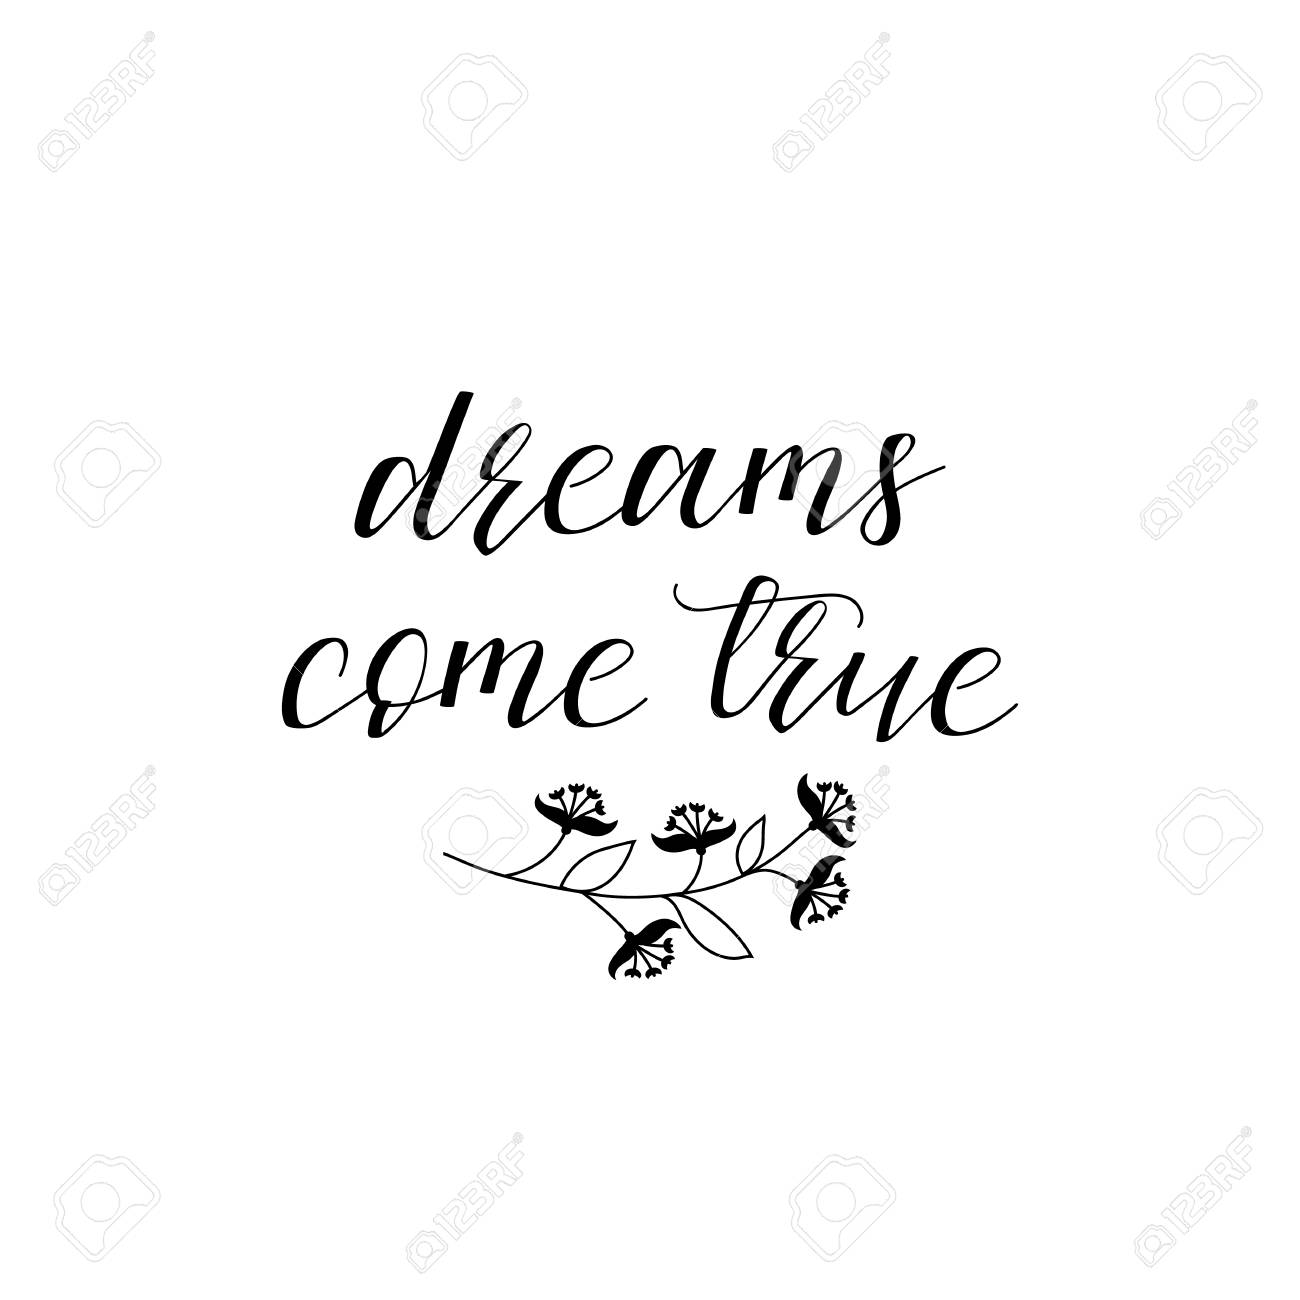 Dreams Come True Lettering Inspirational And Motivational Quotes Royalty Free Cliparts Vectors And Stock Illustration Image 99657079